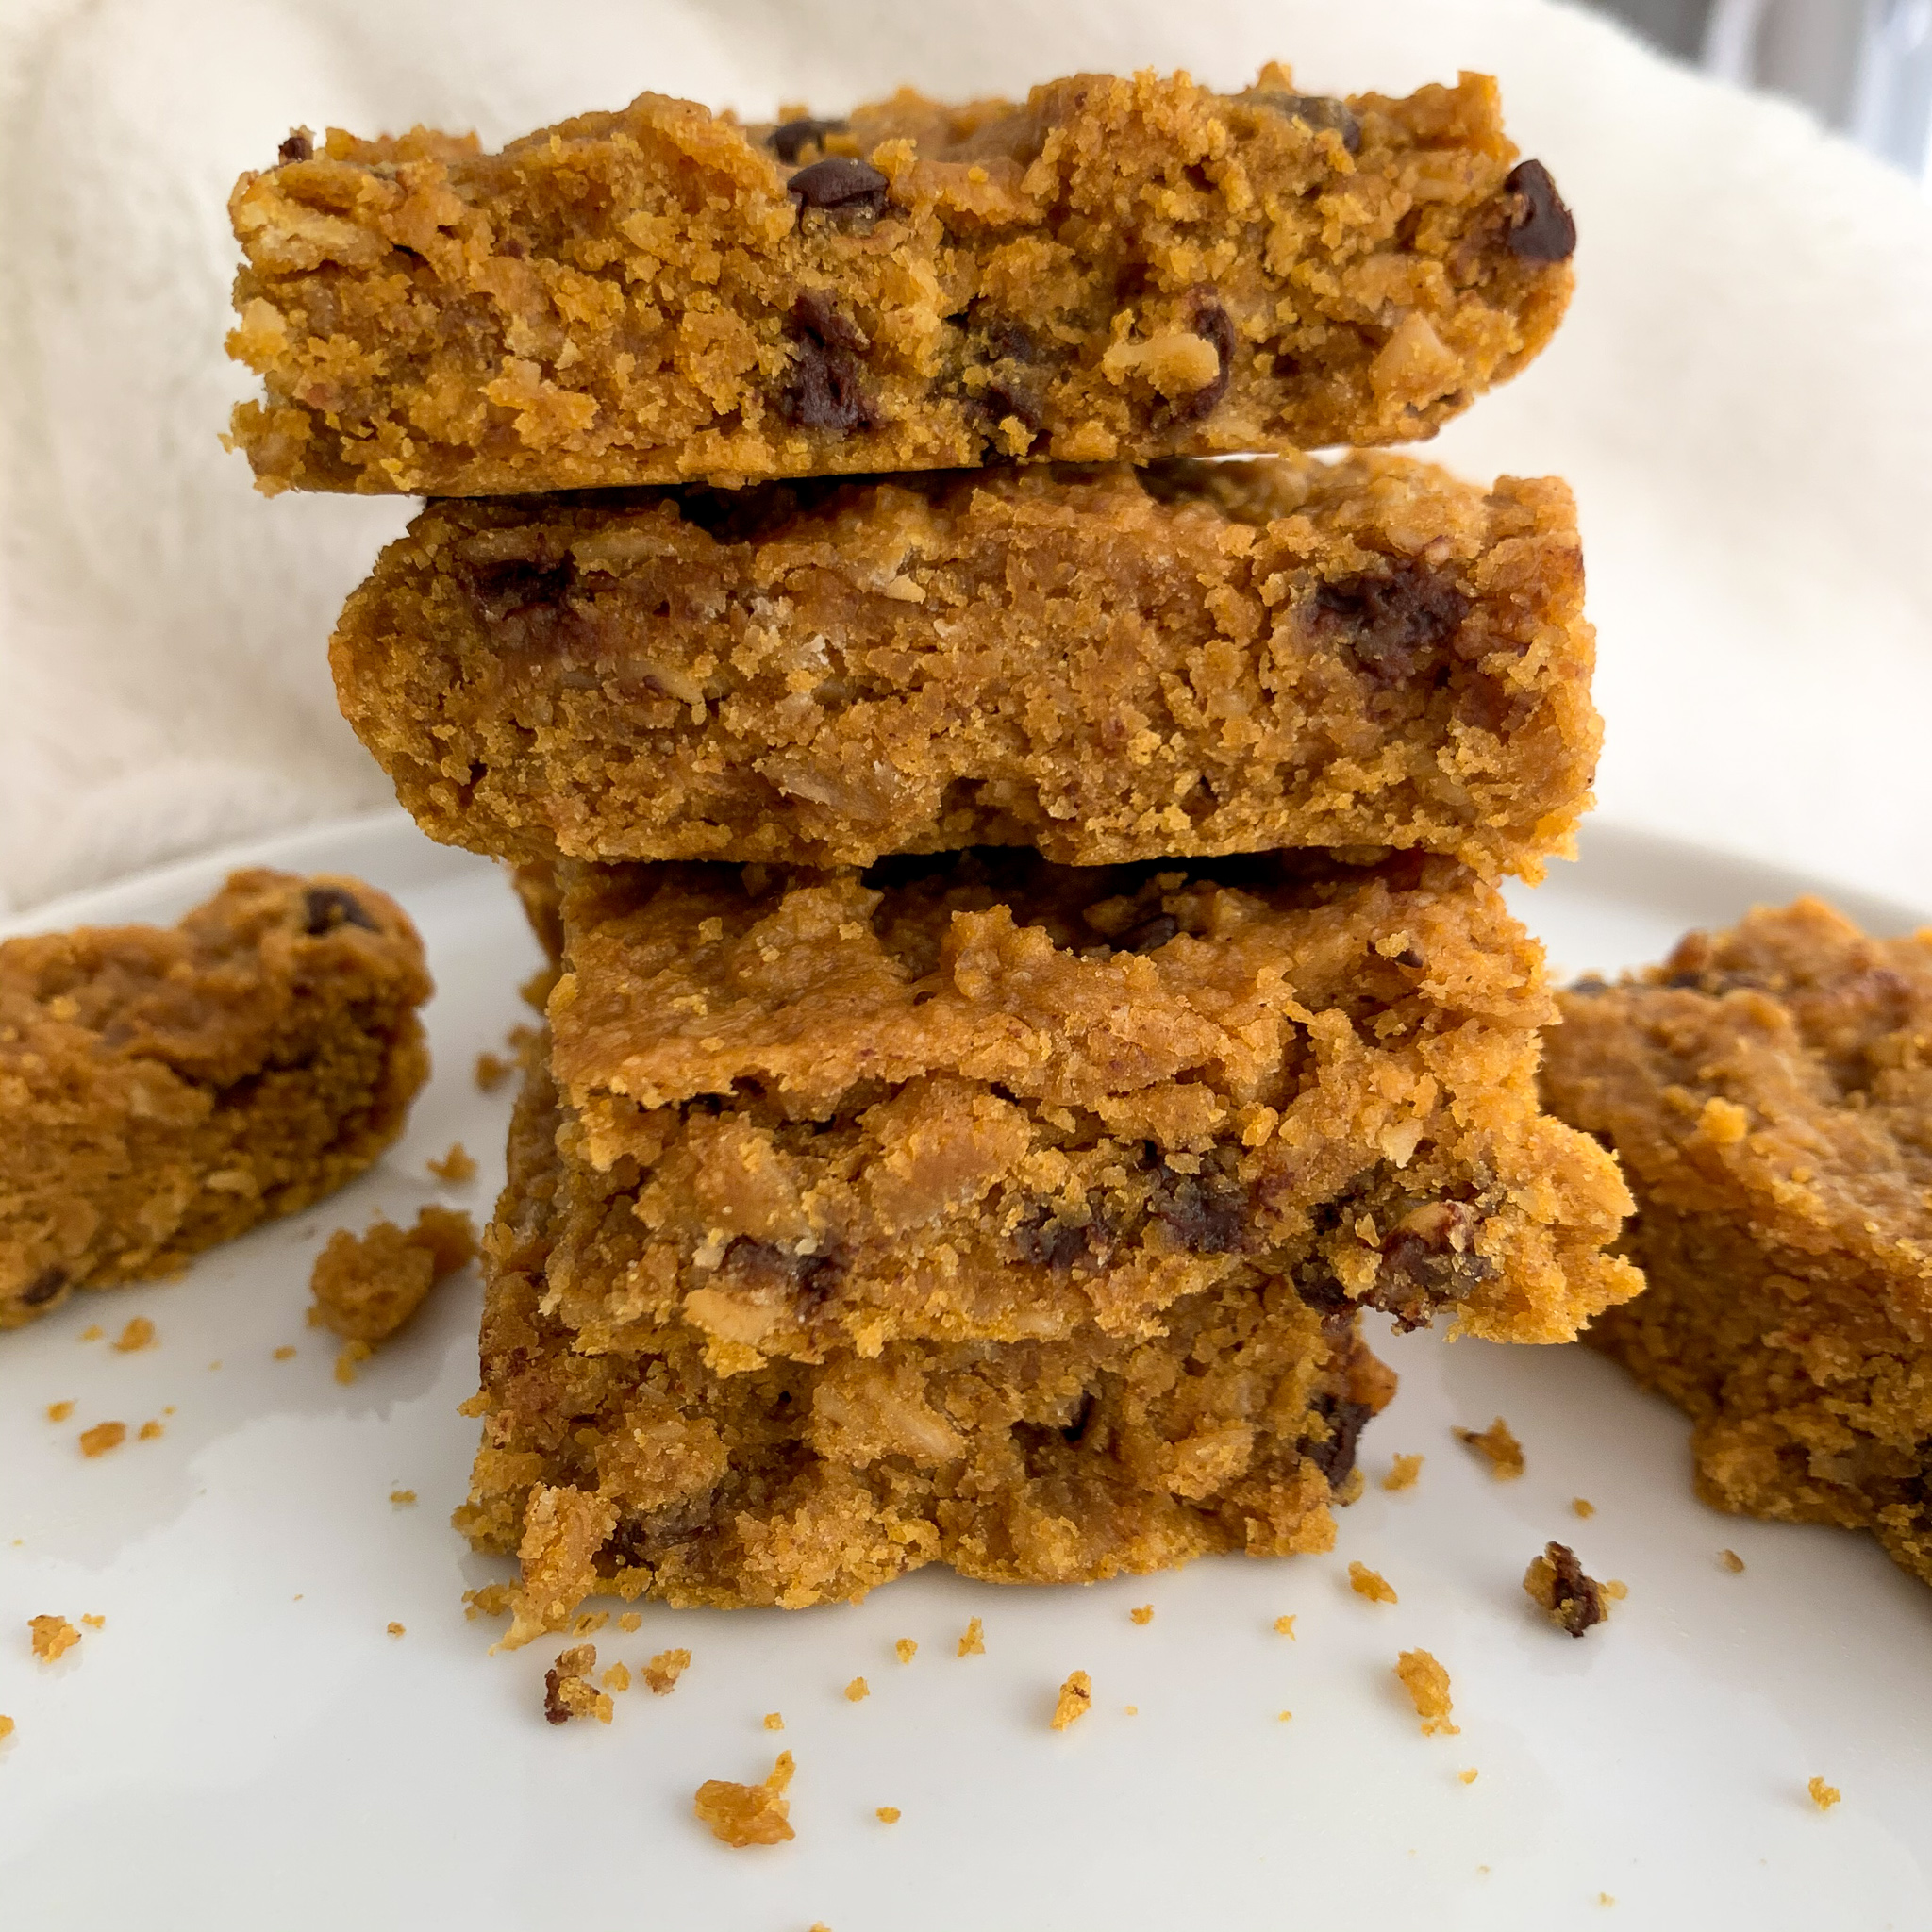 peanut butter and pumpkin chocolate chip oat bars on a white plate with a white background